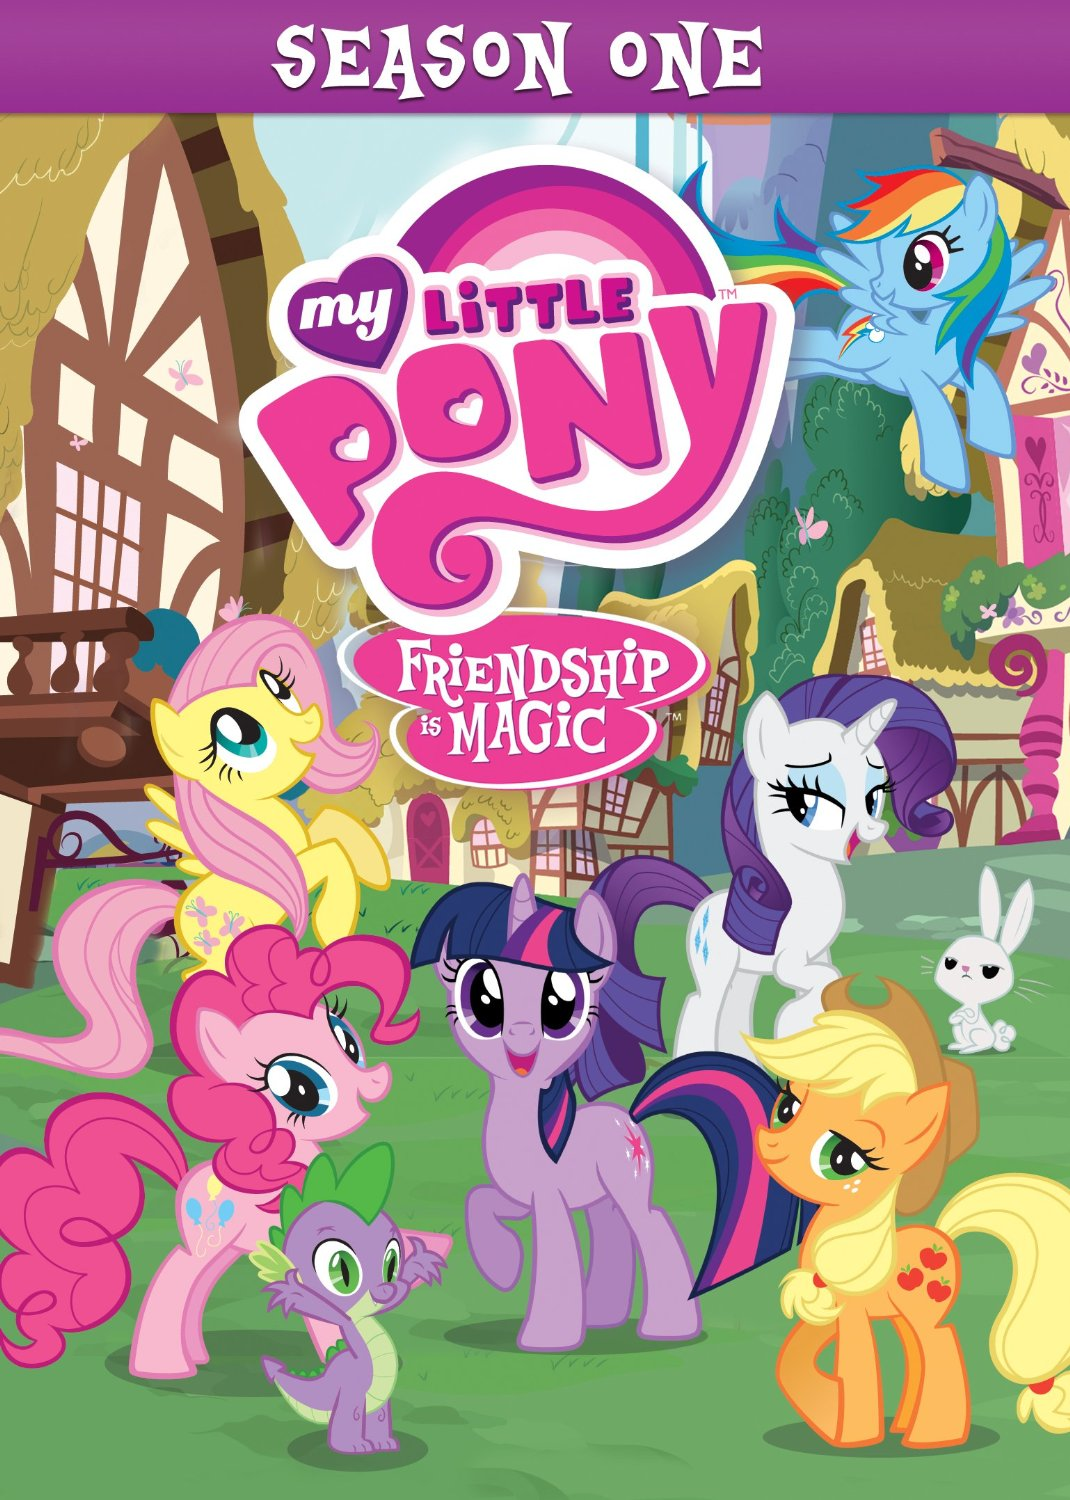 My Little Pony Friendship is Magic SS1 - My Little Pony: Friendship is Magic Season 1 (2010)